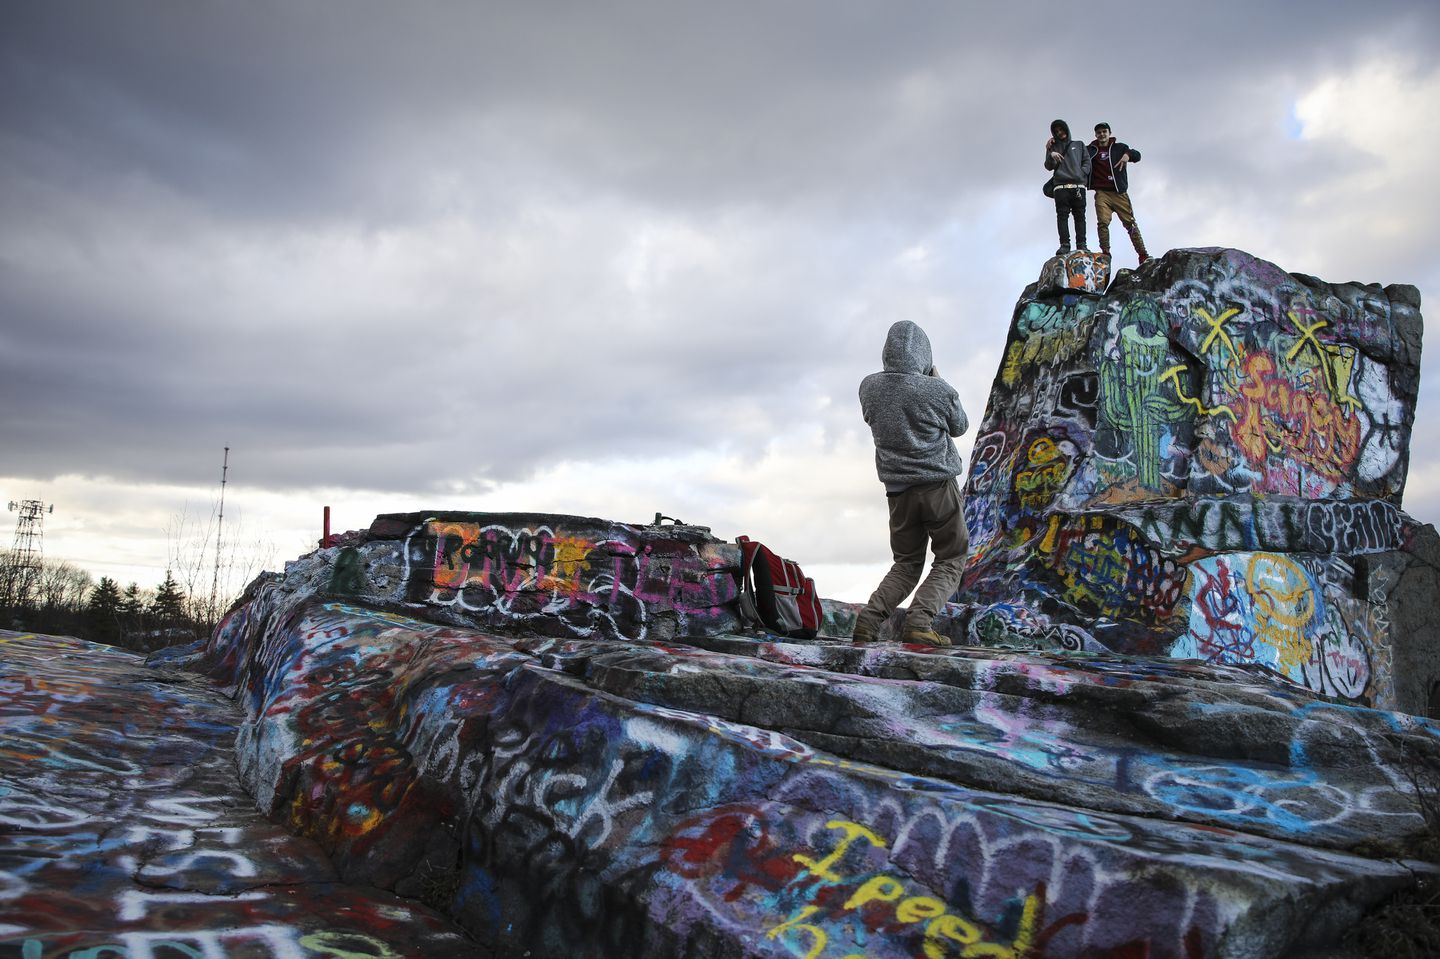 In Quincy Deadly Quarries Became A Beautiful Graffiti Haven The Boston Globe